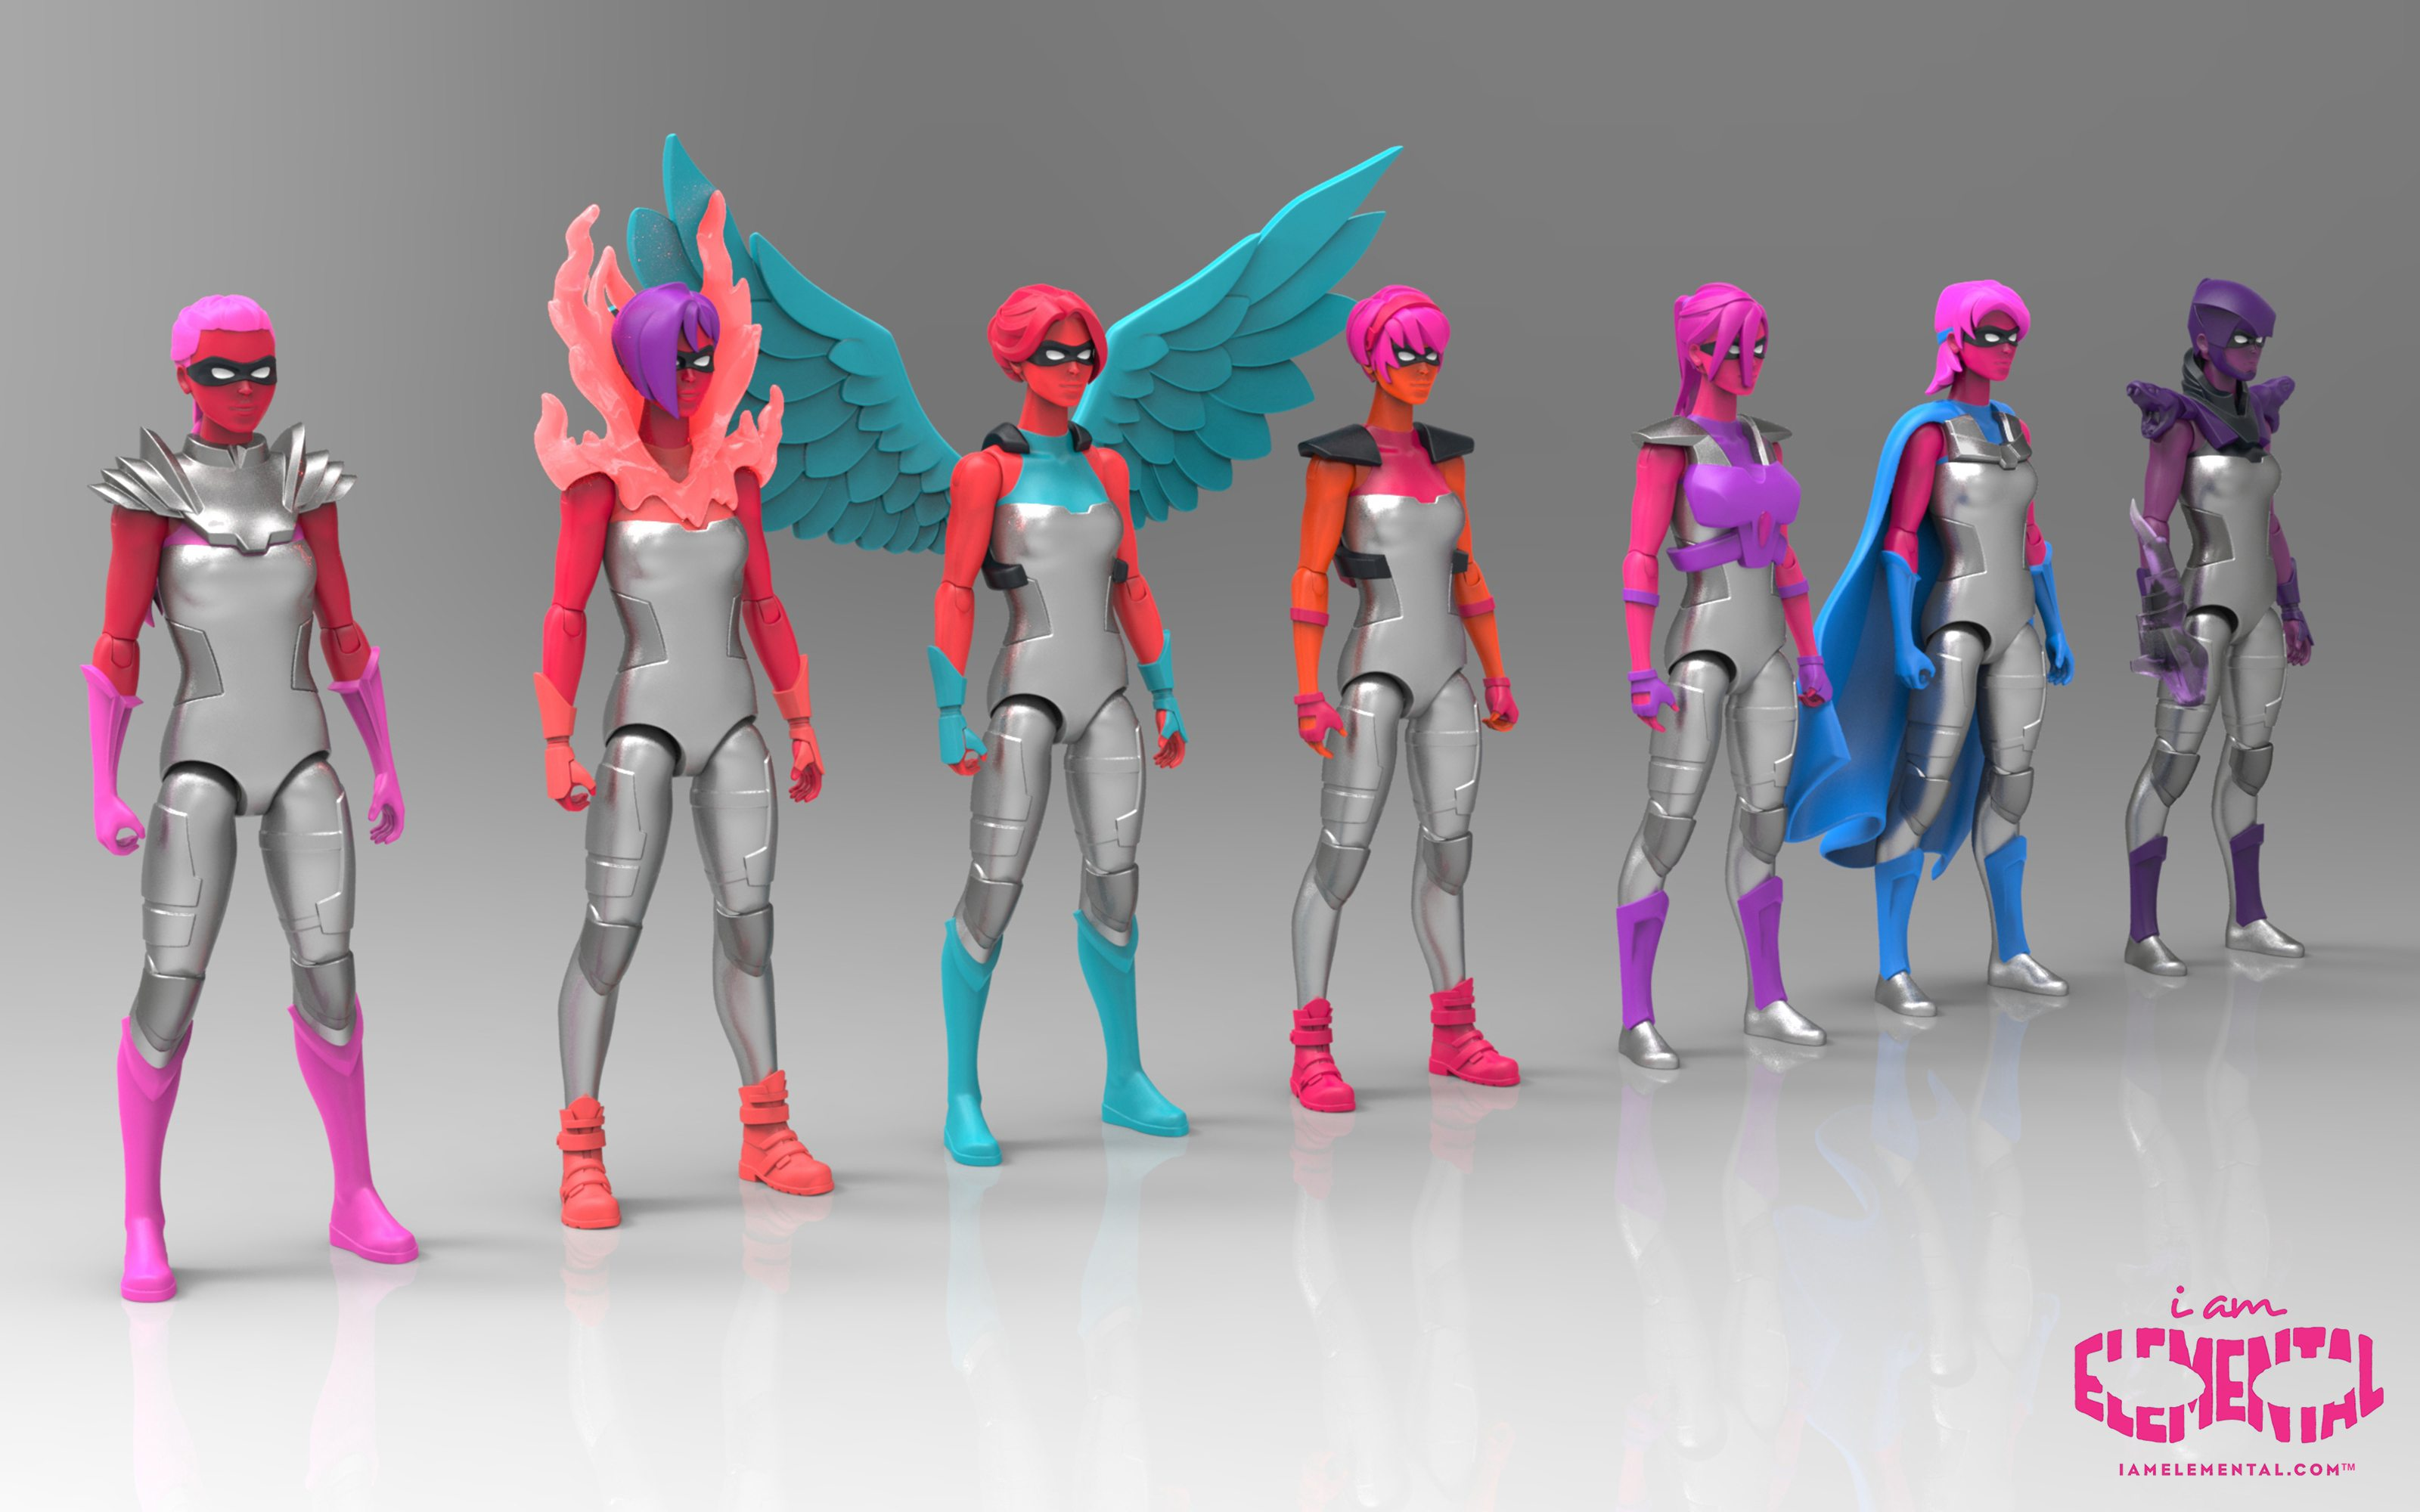 iAmElemental: Female Action Figures for Boys and Girls